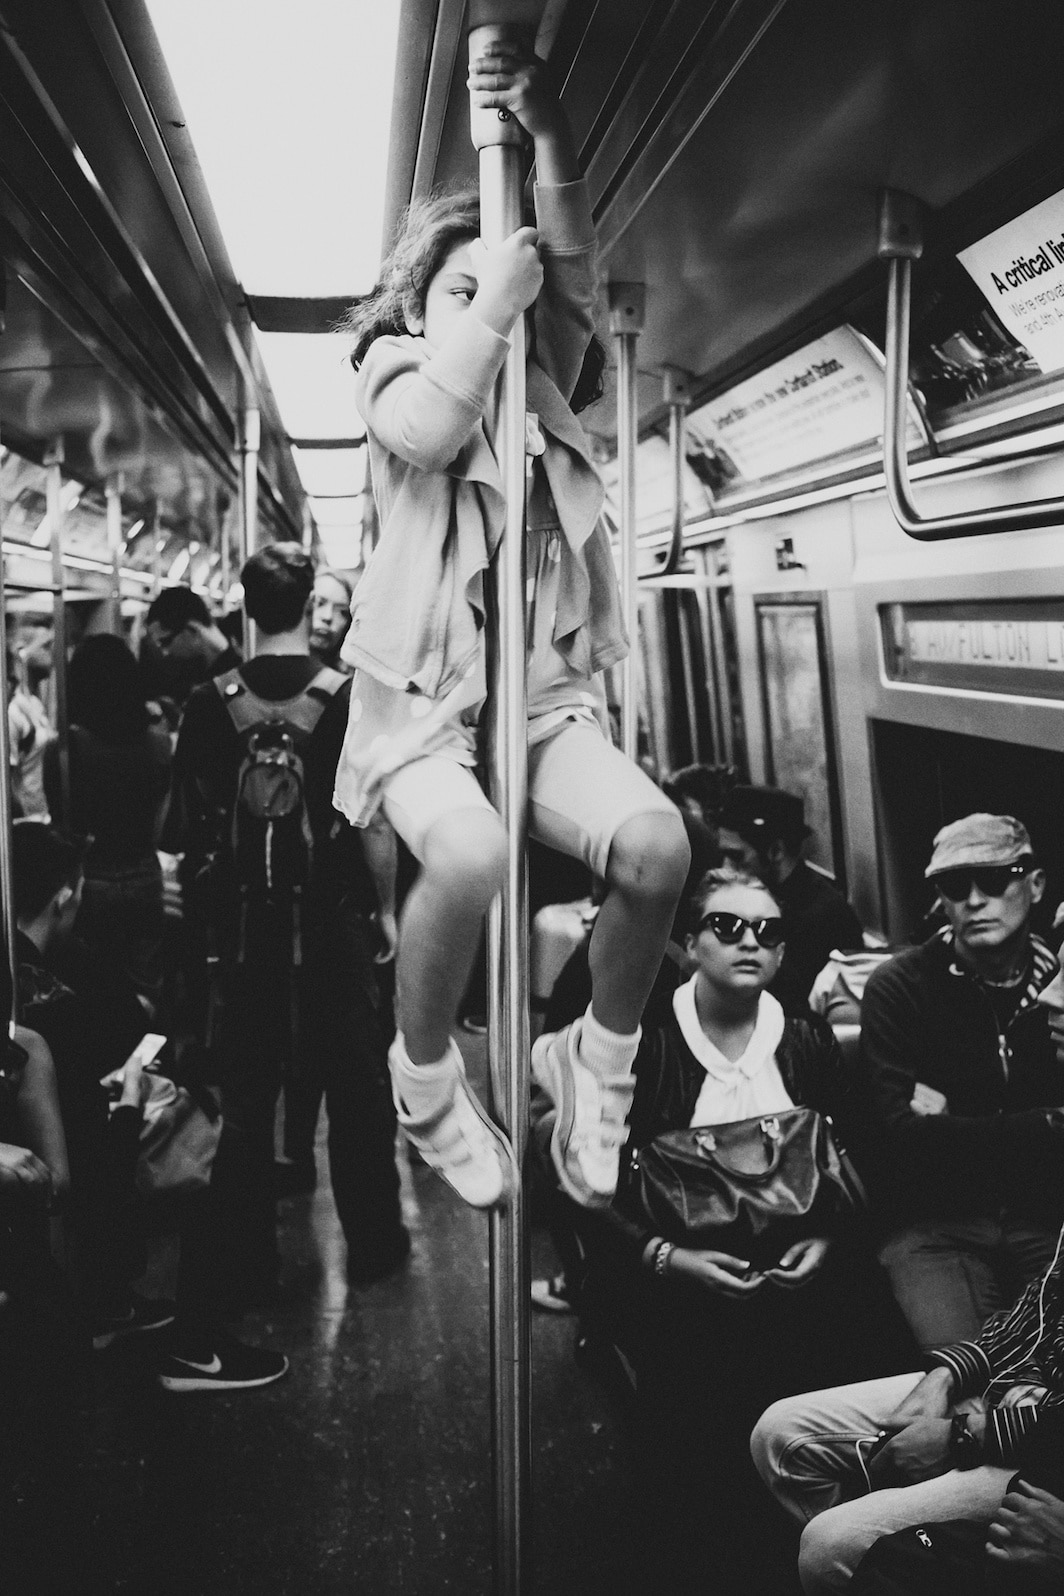 New York Subway Street Photography by Luc Kordas